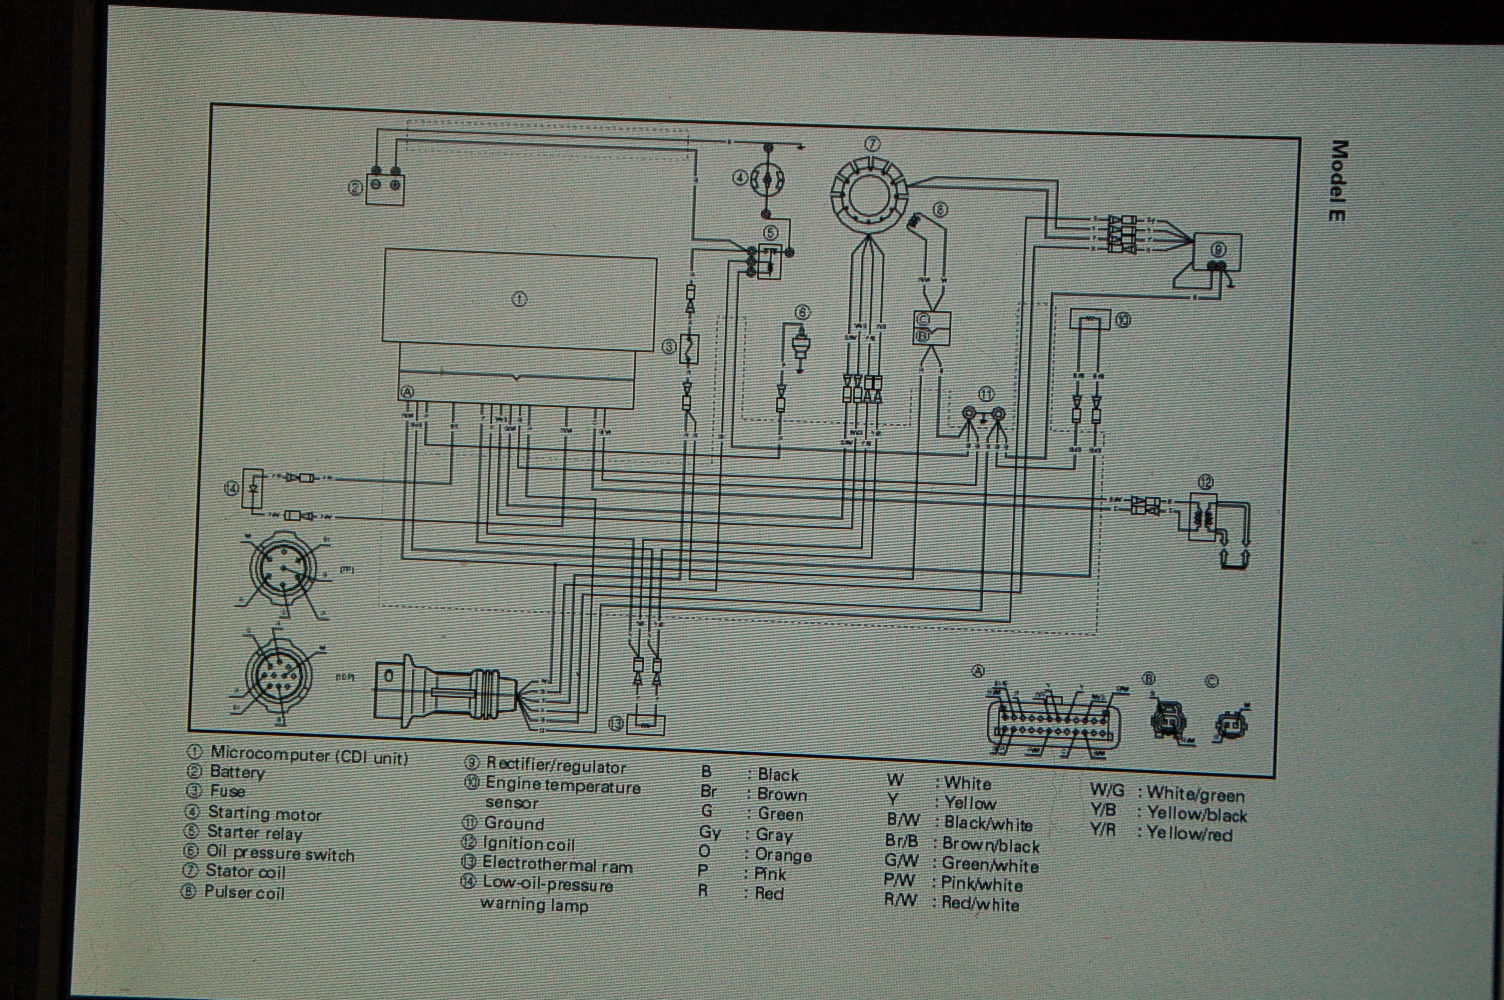 hight resolution of 30 hp yamaha outboard wiring diagram wiring diagram name 30 hp yamaha outboard wiring wiring diagram